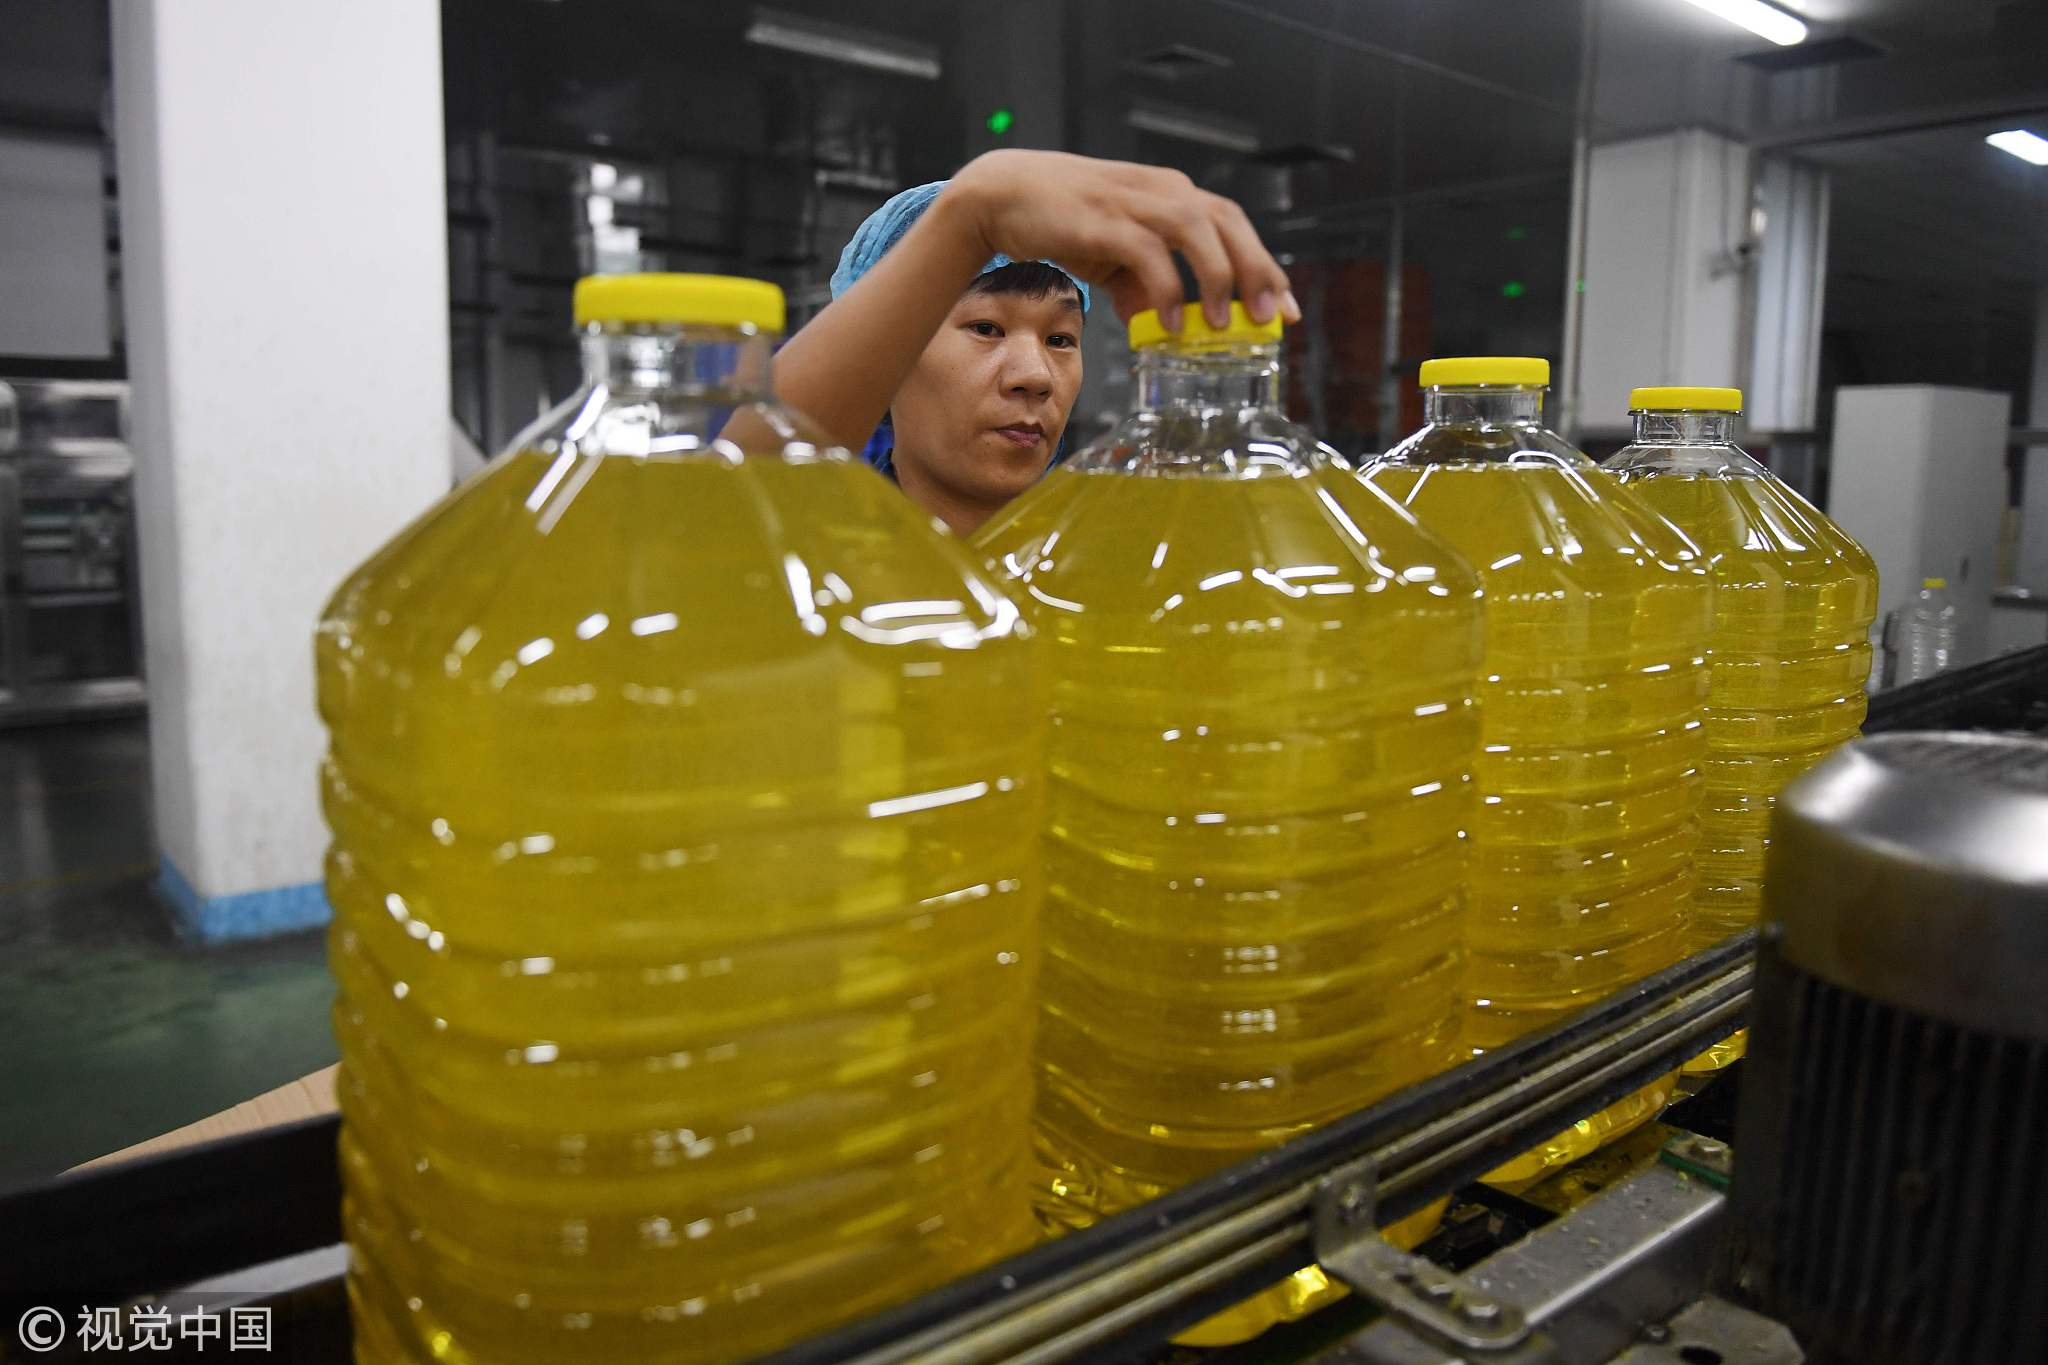 A worker checking a cap on a bottle of soybean oil at the Hopeful Grain and Oil Group factory in Sanhe, in China's northern Hebei province. The company uses soybeans imported from Brazil, after recently changing from a US supplier, July 19, 2018. [Photo: VCG]